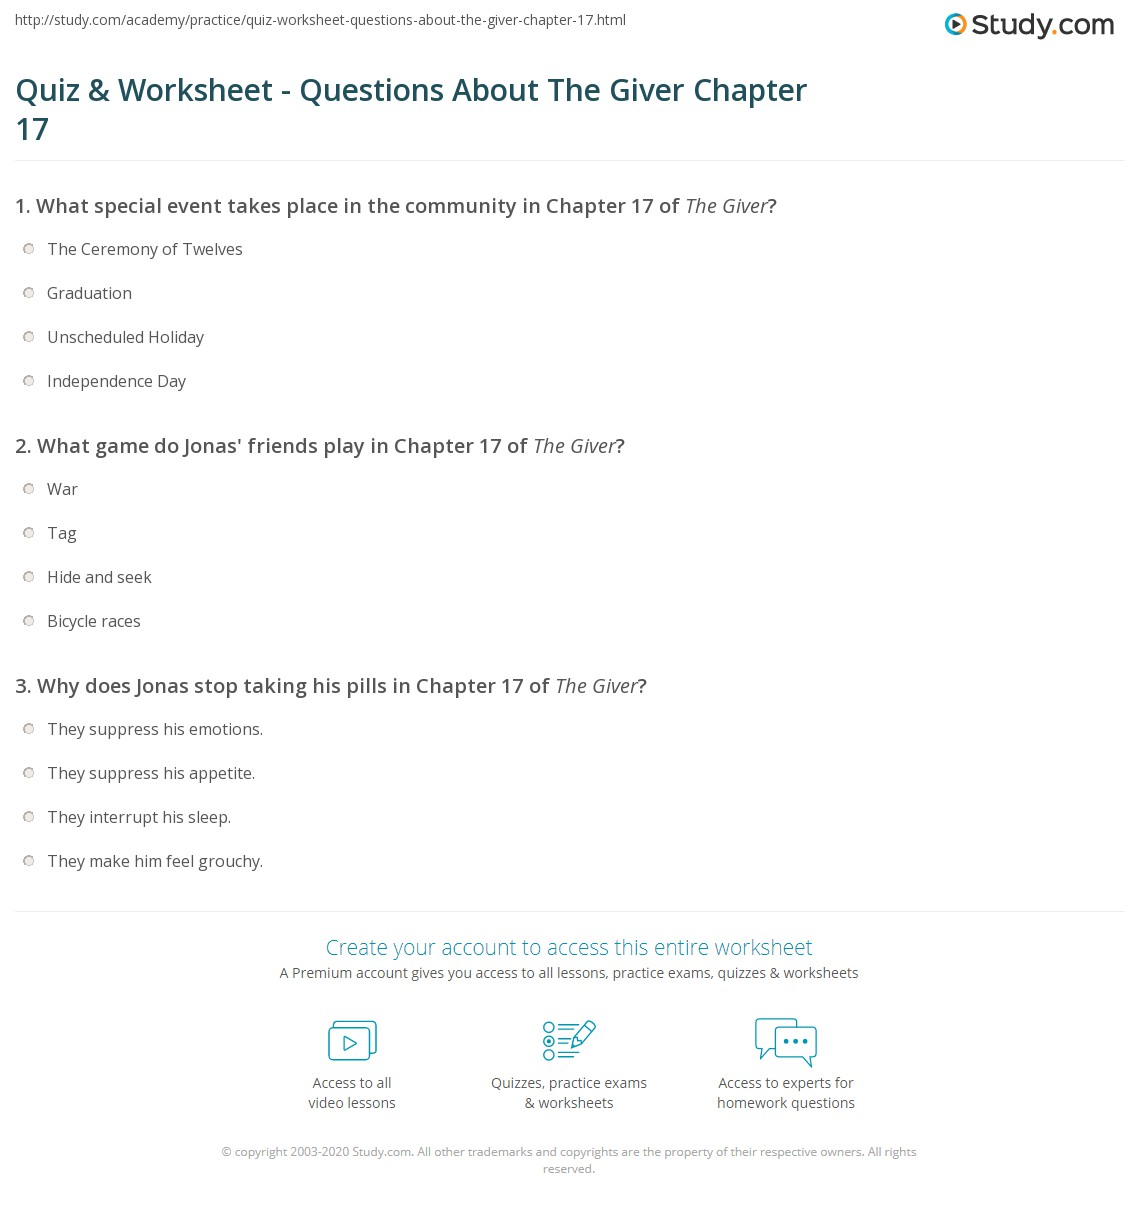 quiz worksheet questions about the giver chapter com print the giver chapter 17 summary quotes worksheet